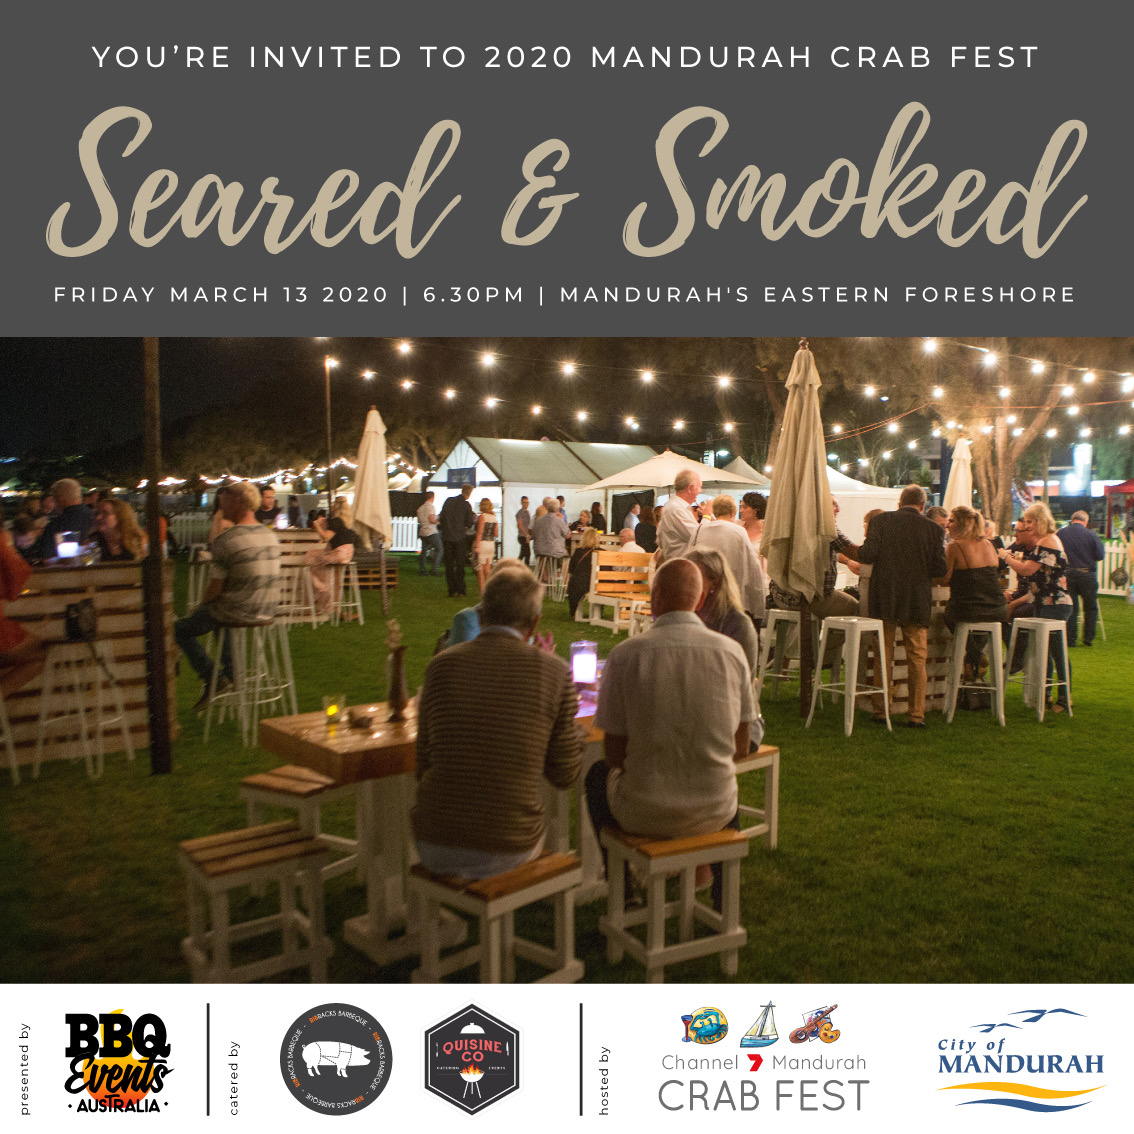 Crab Fest Event - Seared & Smoked ** CANCELLED **